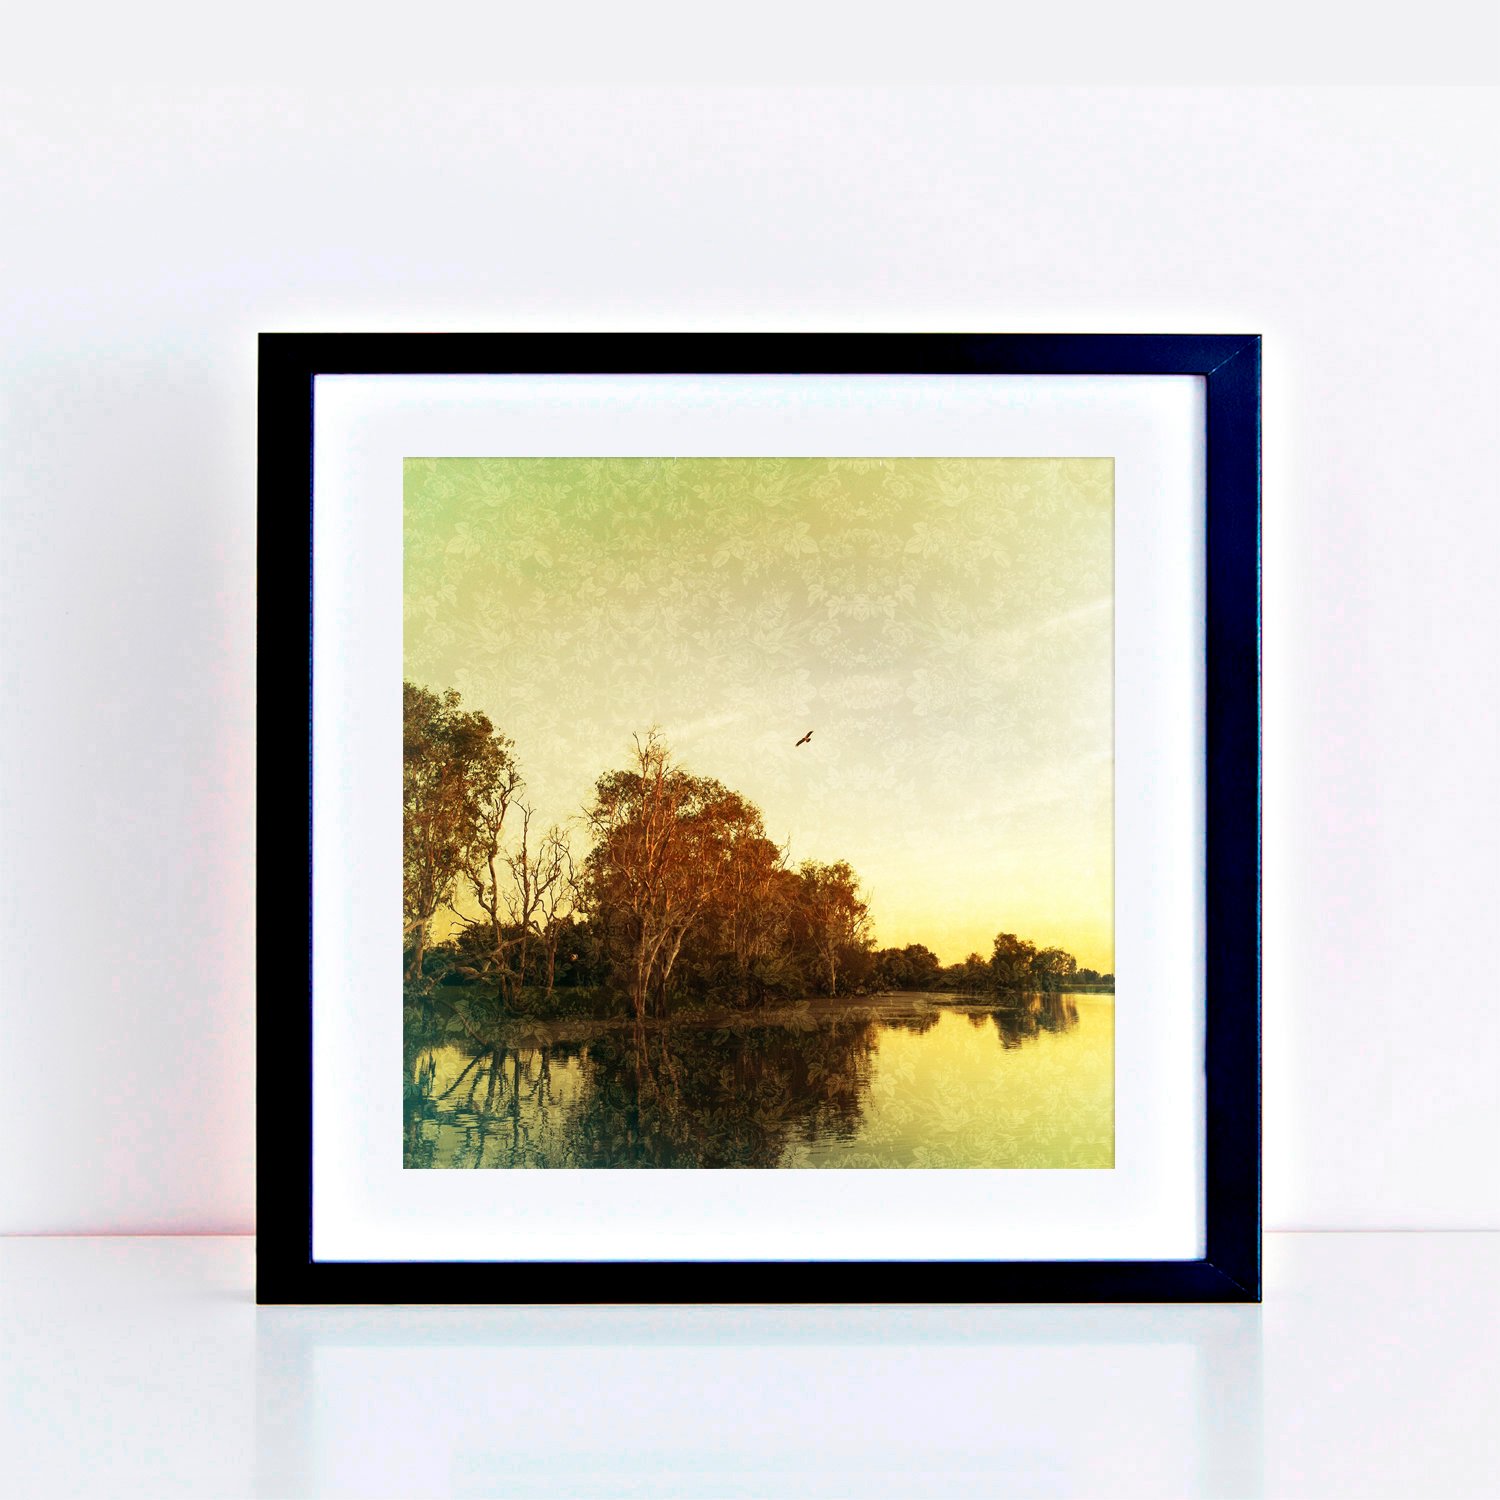 fineart-yellowriverframed